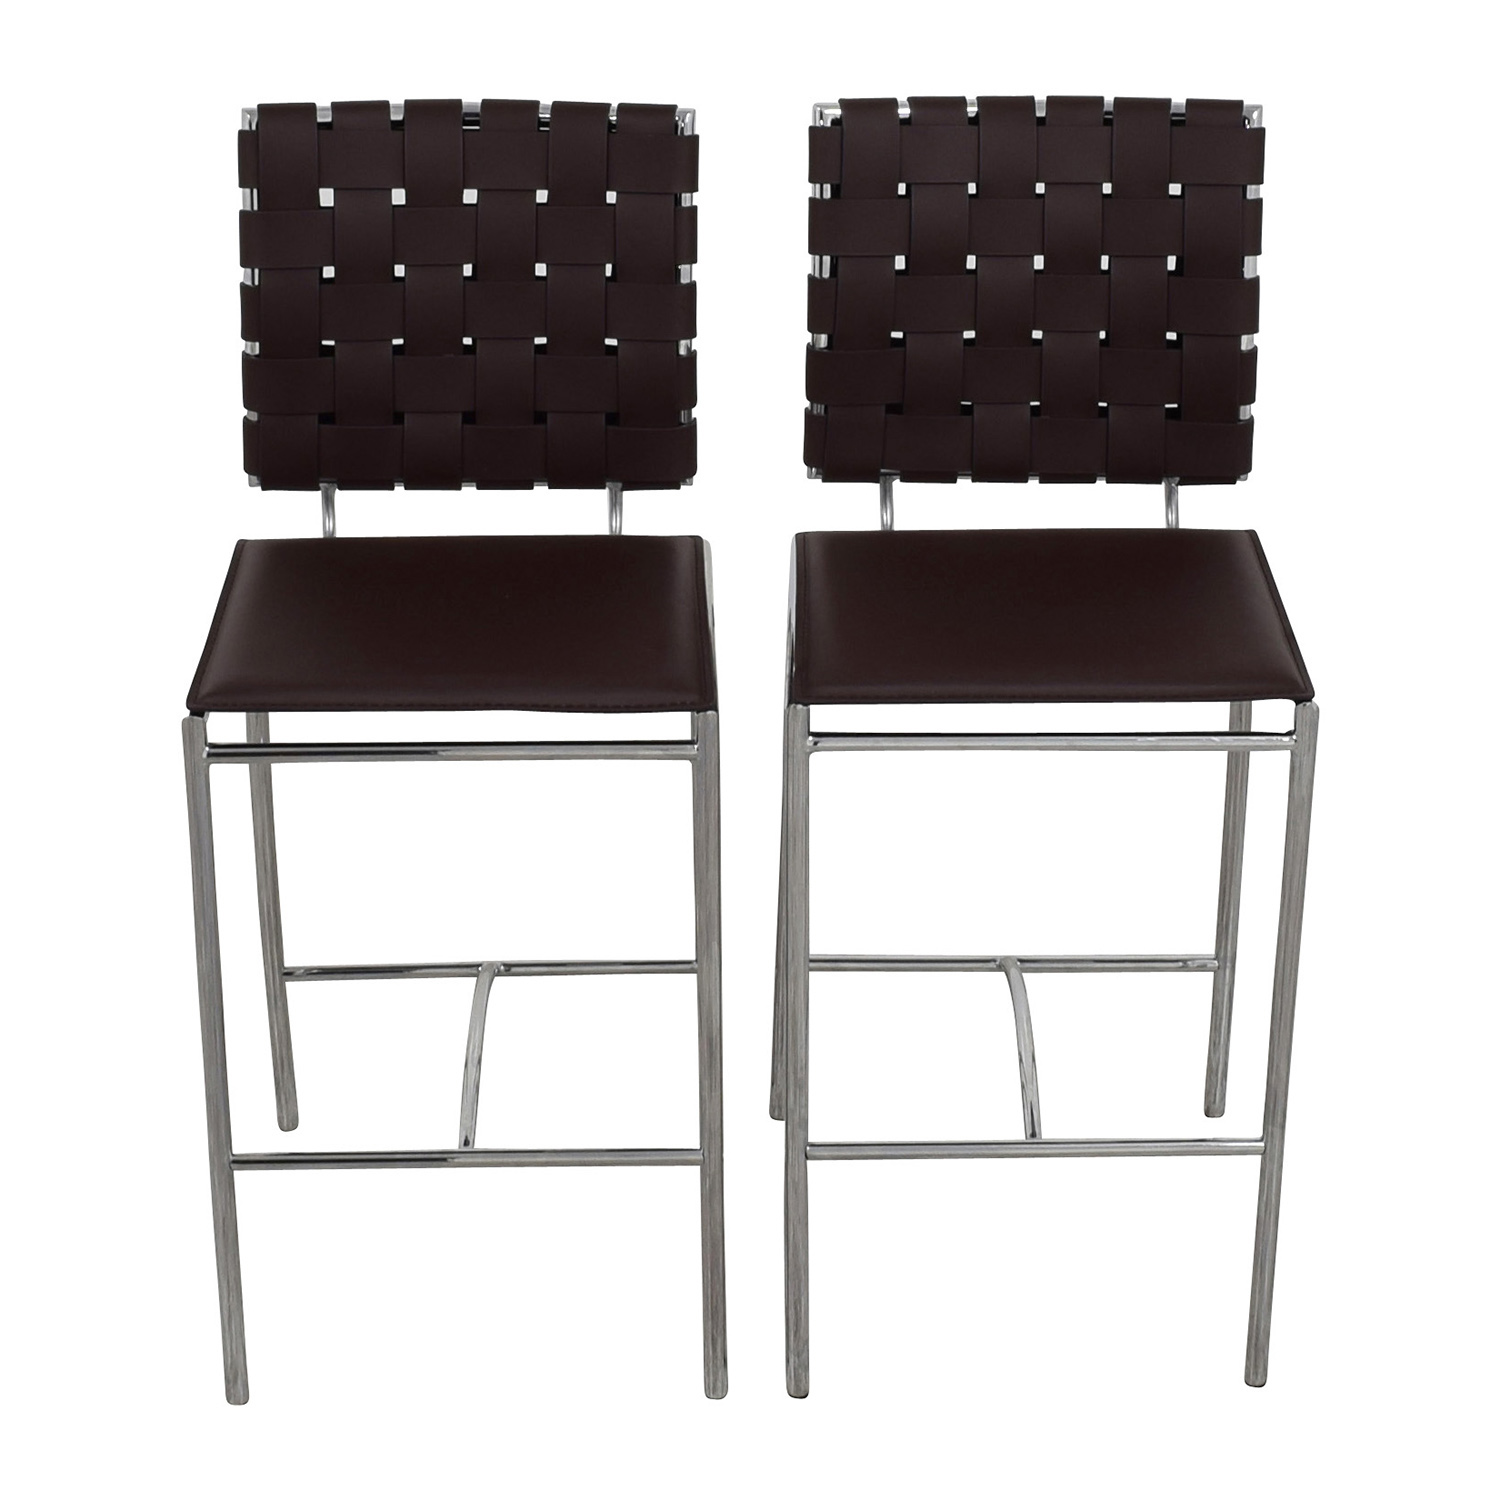 77 off inmod inmod carina c counter chair chairs for In mod furniture